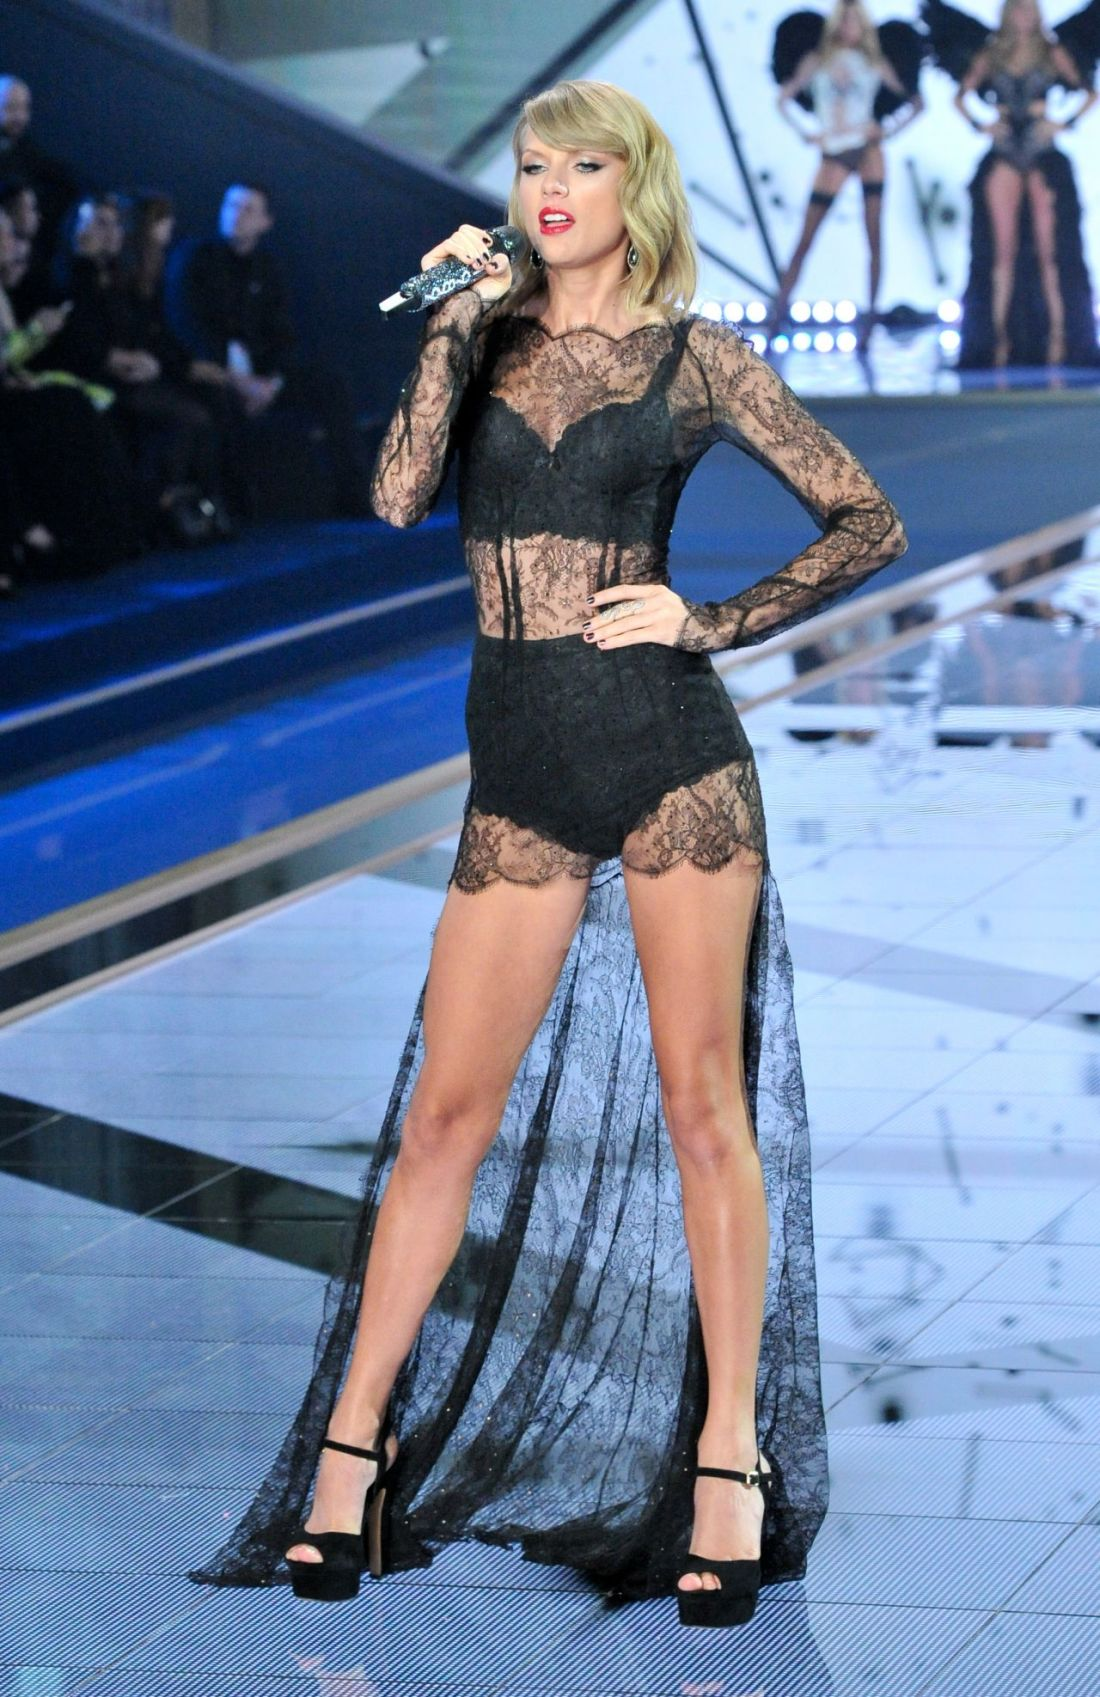 taylor-swift-performs-at-victoria-s-secret-fashion-show-in-london-december-2014_1